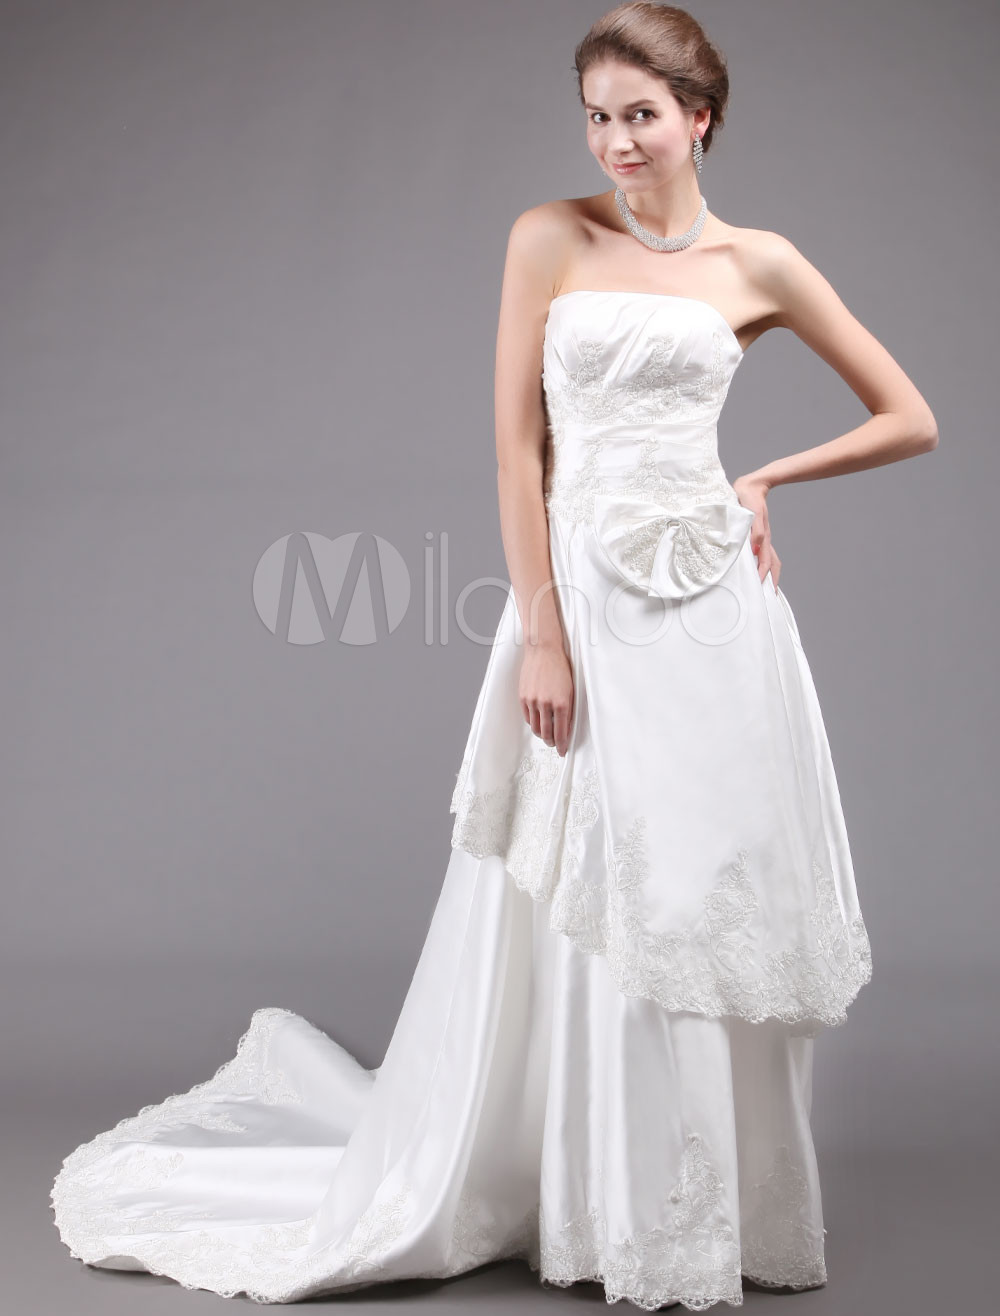 Ivory Court Train Strapless Bow Bridal Wedding Dress